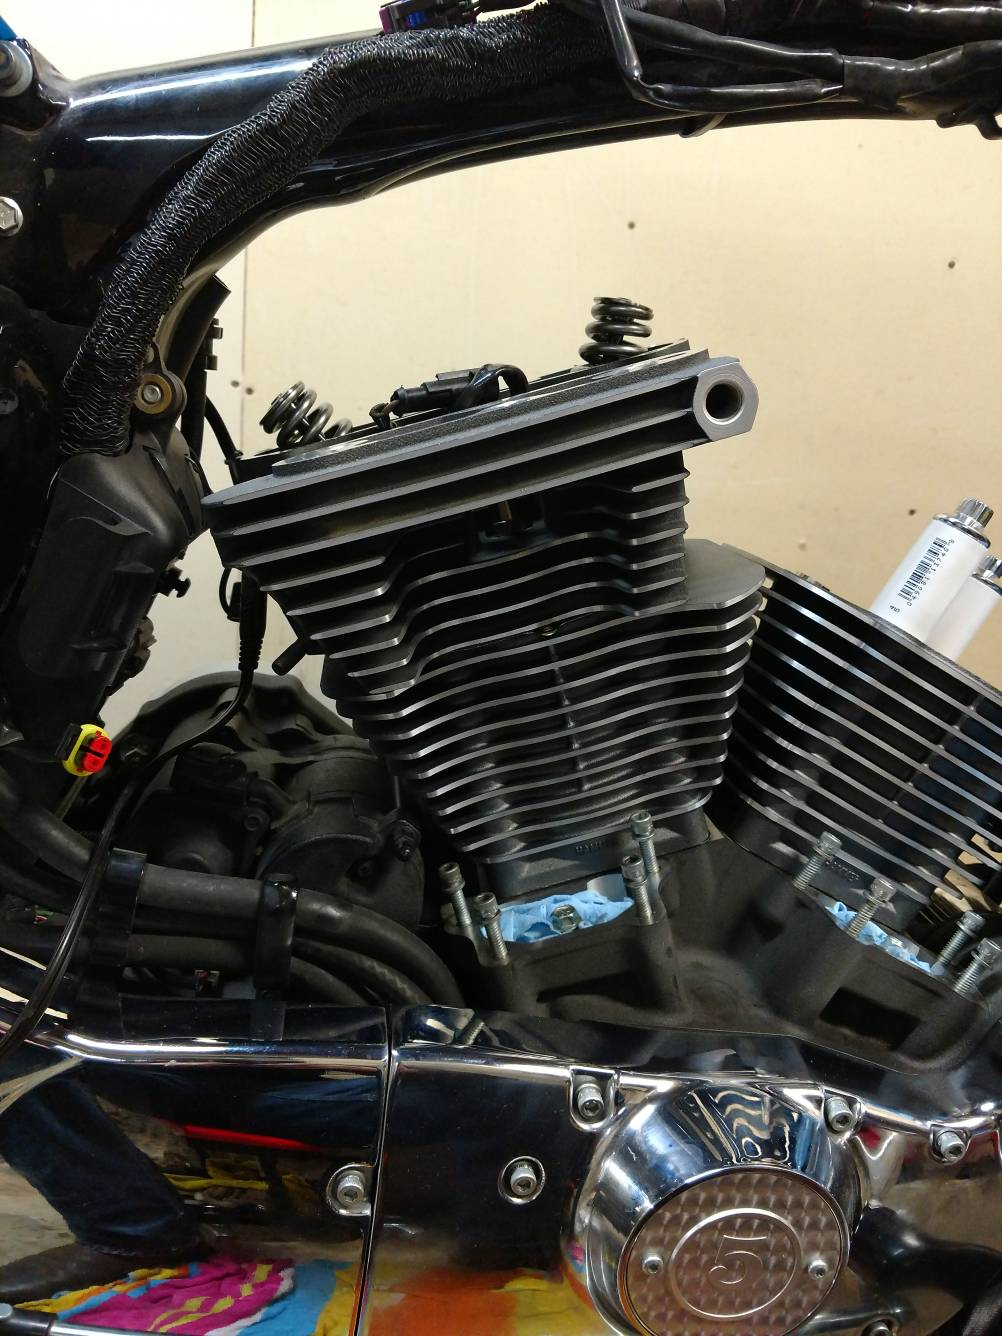 1200 to 1275 Hammer Conversion - The Sportster and Buell Motorcycle